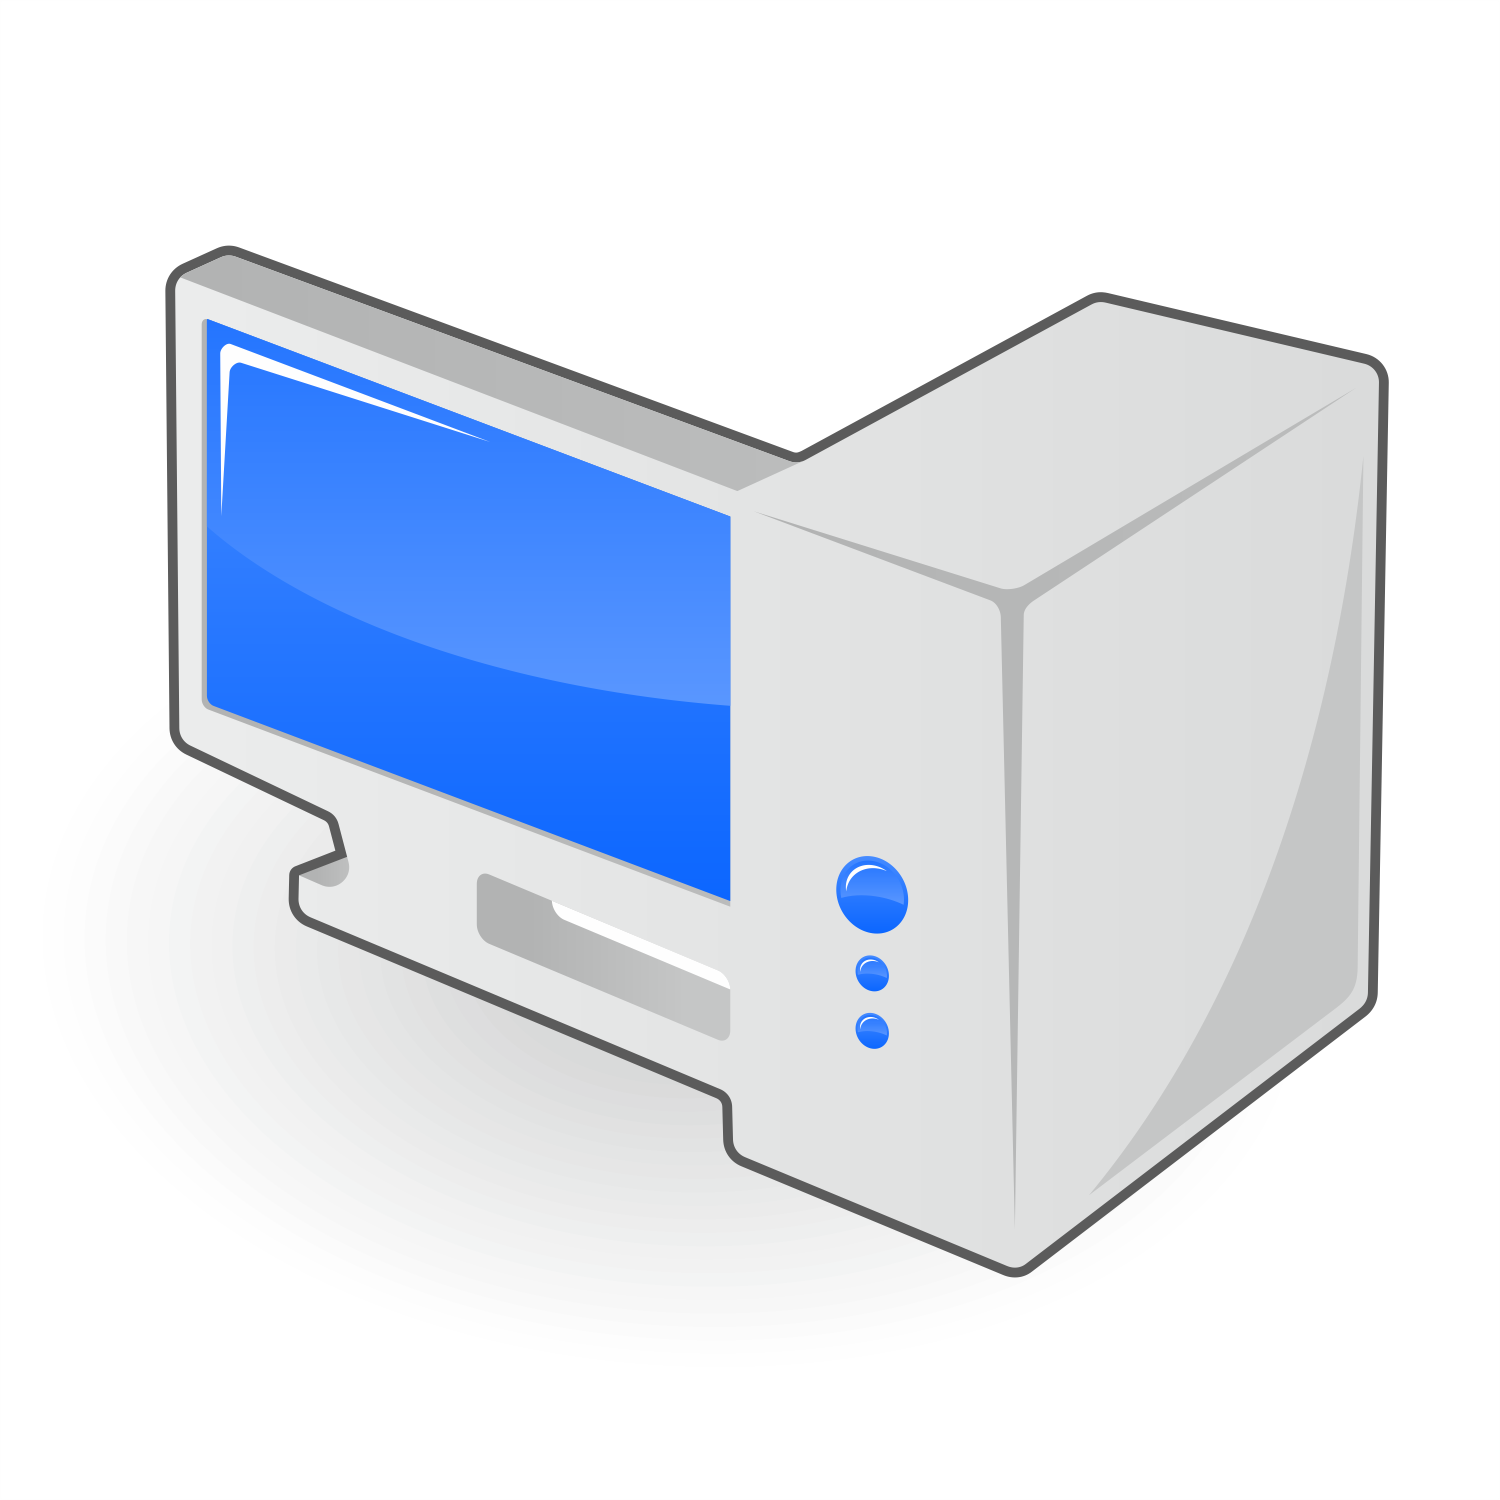 Computer with blue display. Vector icon.